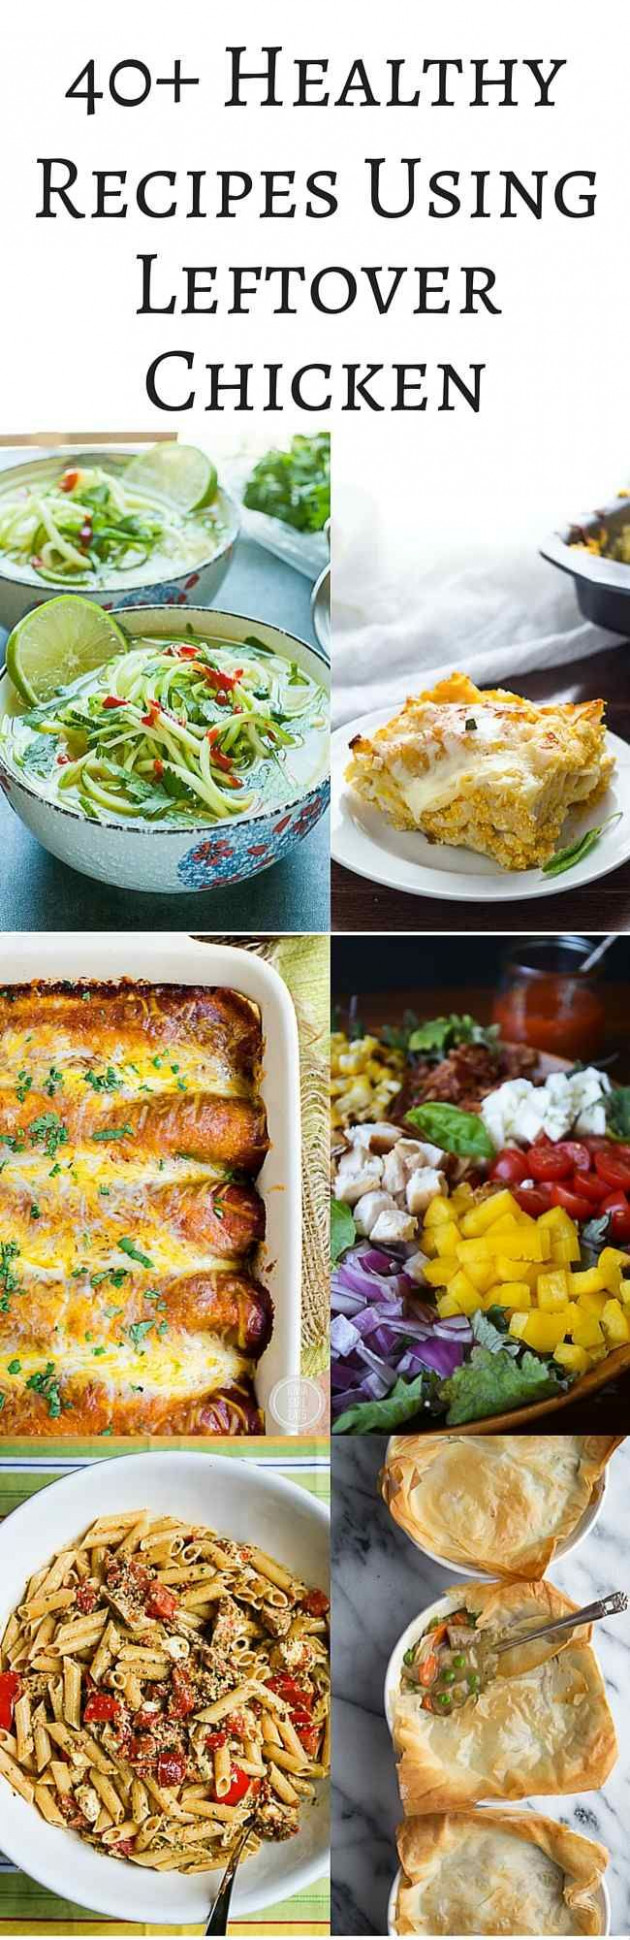 40+ Healthy Recipes Using Leftover Chicken | The Chicken ..